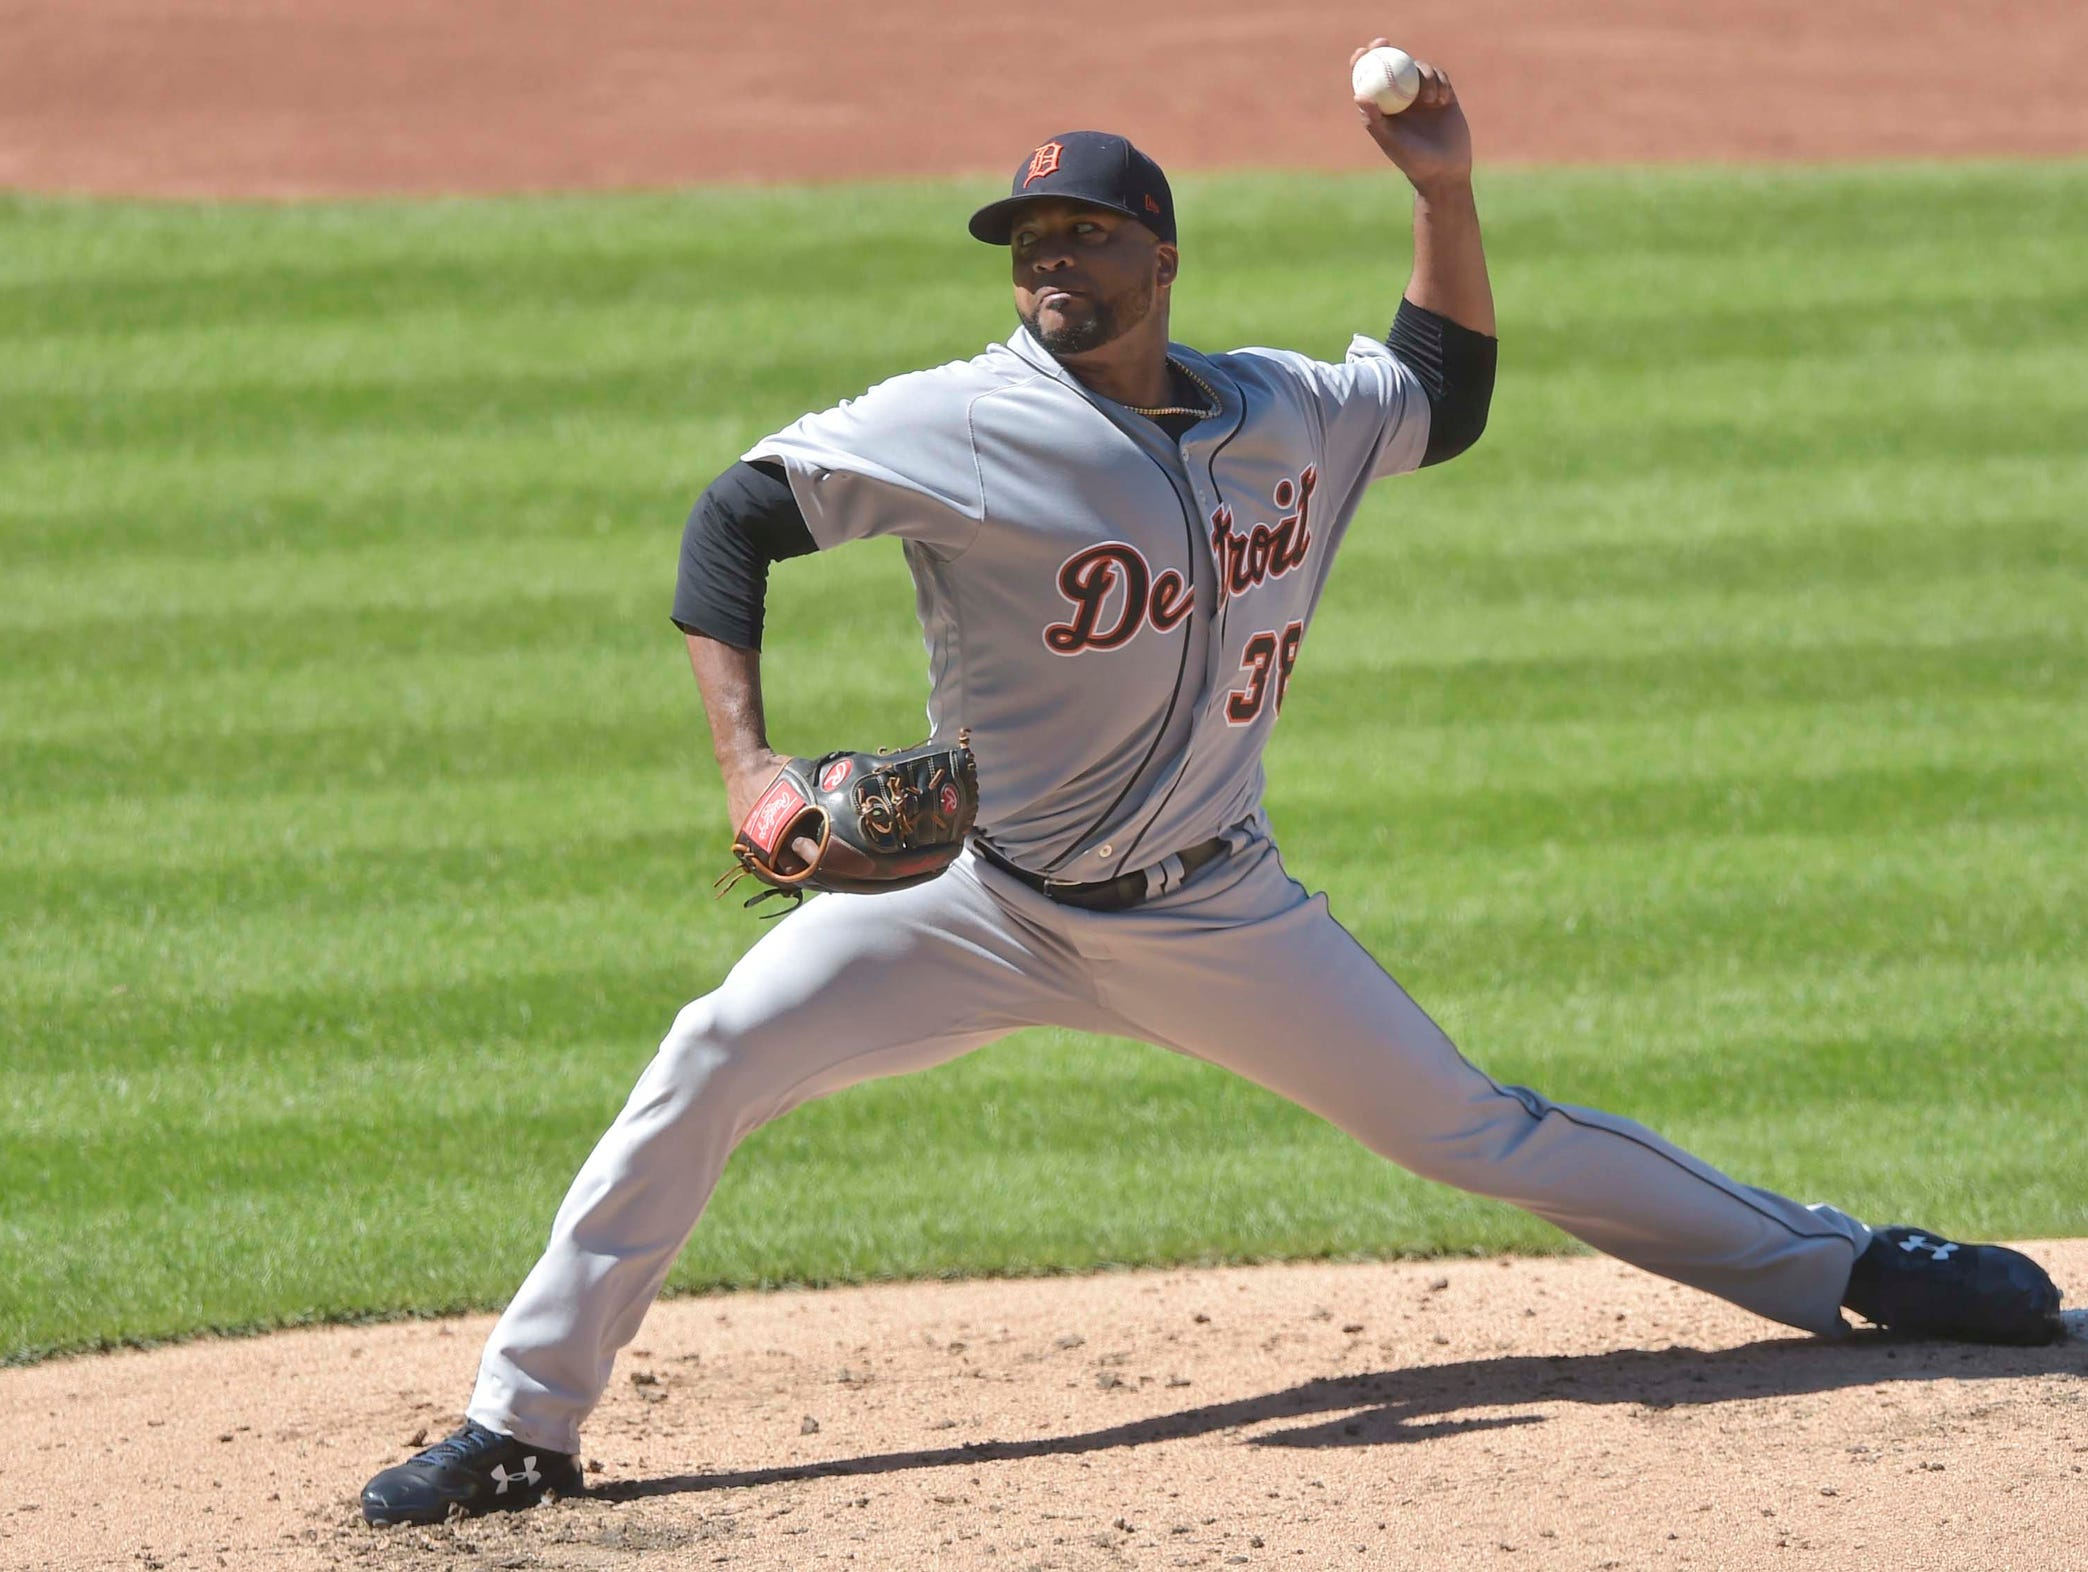 Tigers pitcher Francisco Liriano delivers in the third inning on Sunday, Sept. 16, 2018, in Cleveland.